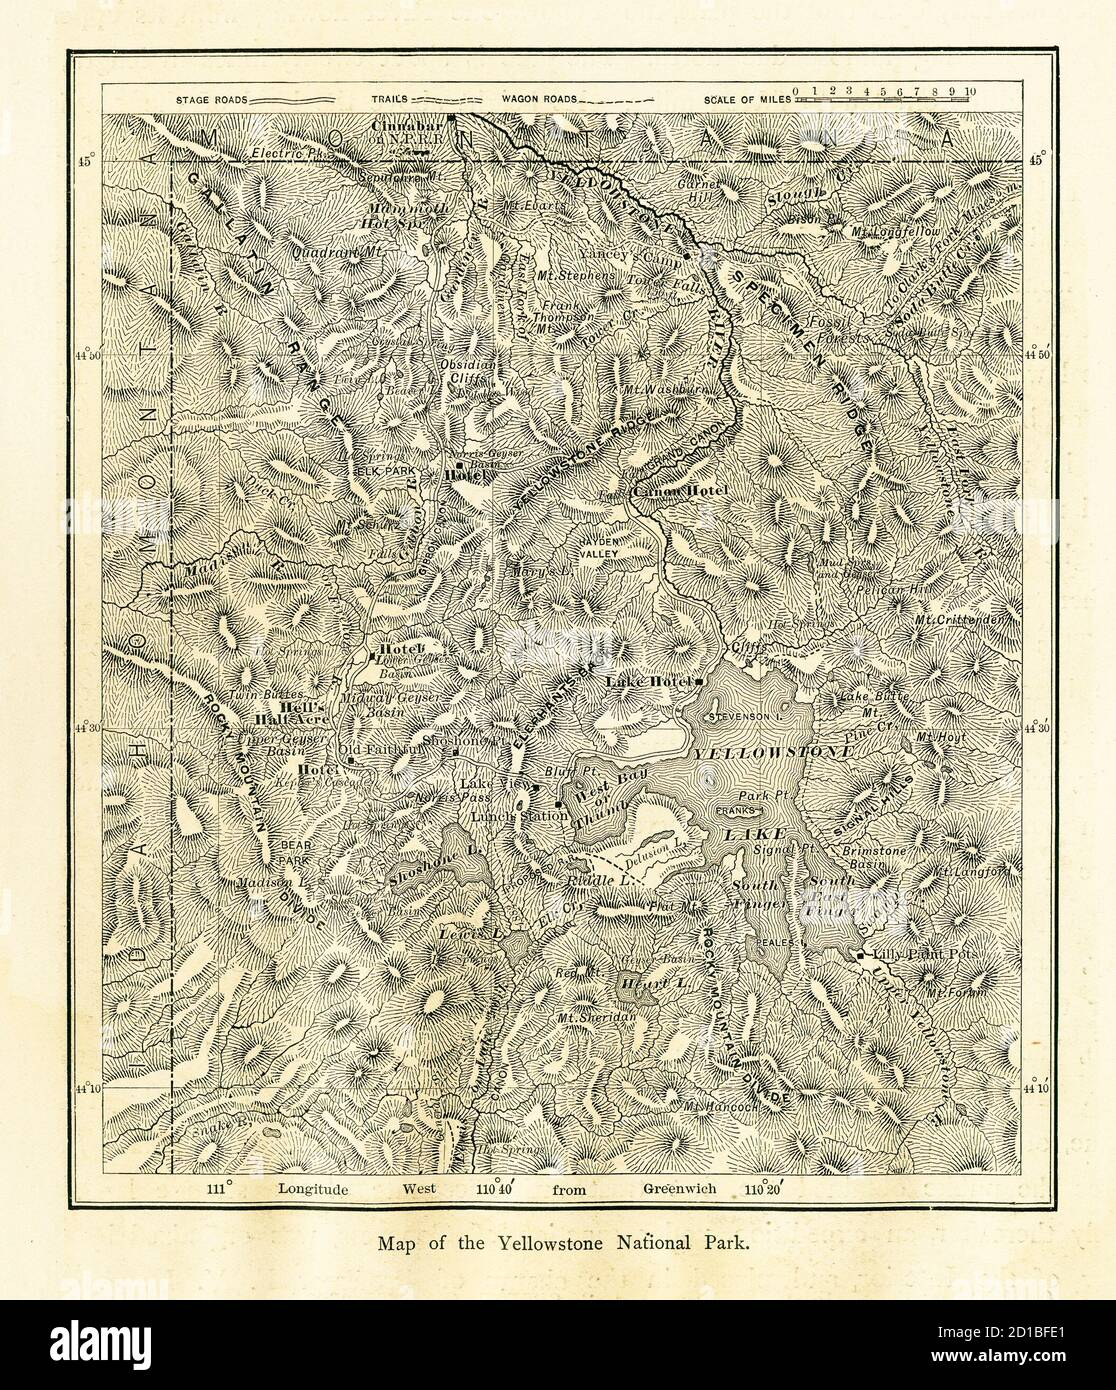 Wildlife, geothermal wonders, and the outdoors bring more than 4 million visitors to yellowstone national park each year. 19th Century Wood Engraving Of A Map Of Yellowstone National Park Located Primarily In The U S State Of Wyoming Illustration Published In Picturesq Stock Photo Alamy